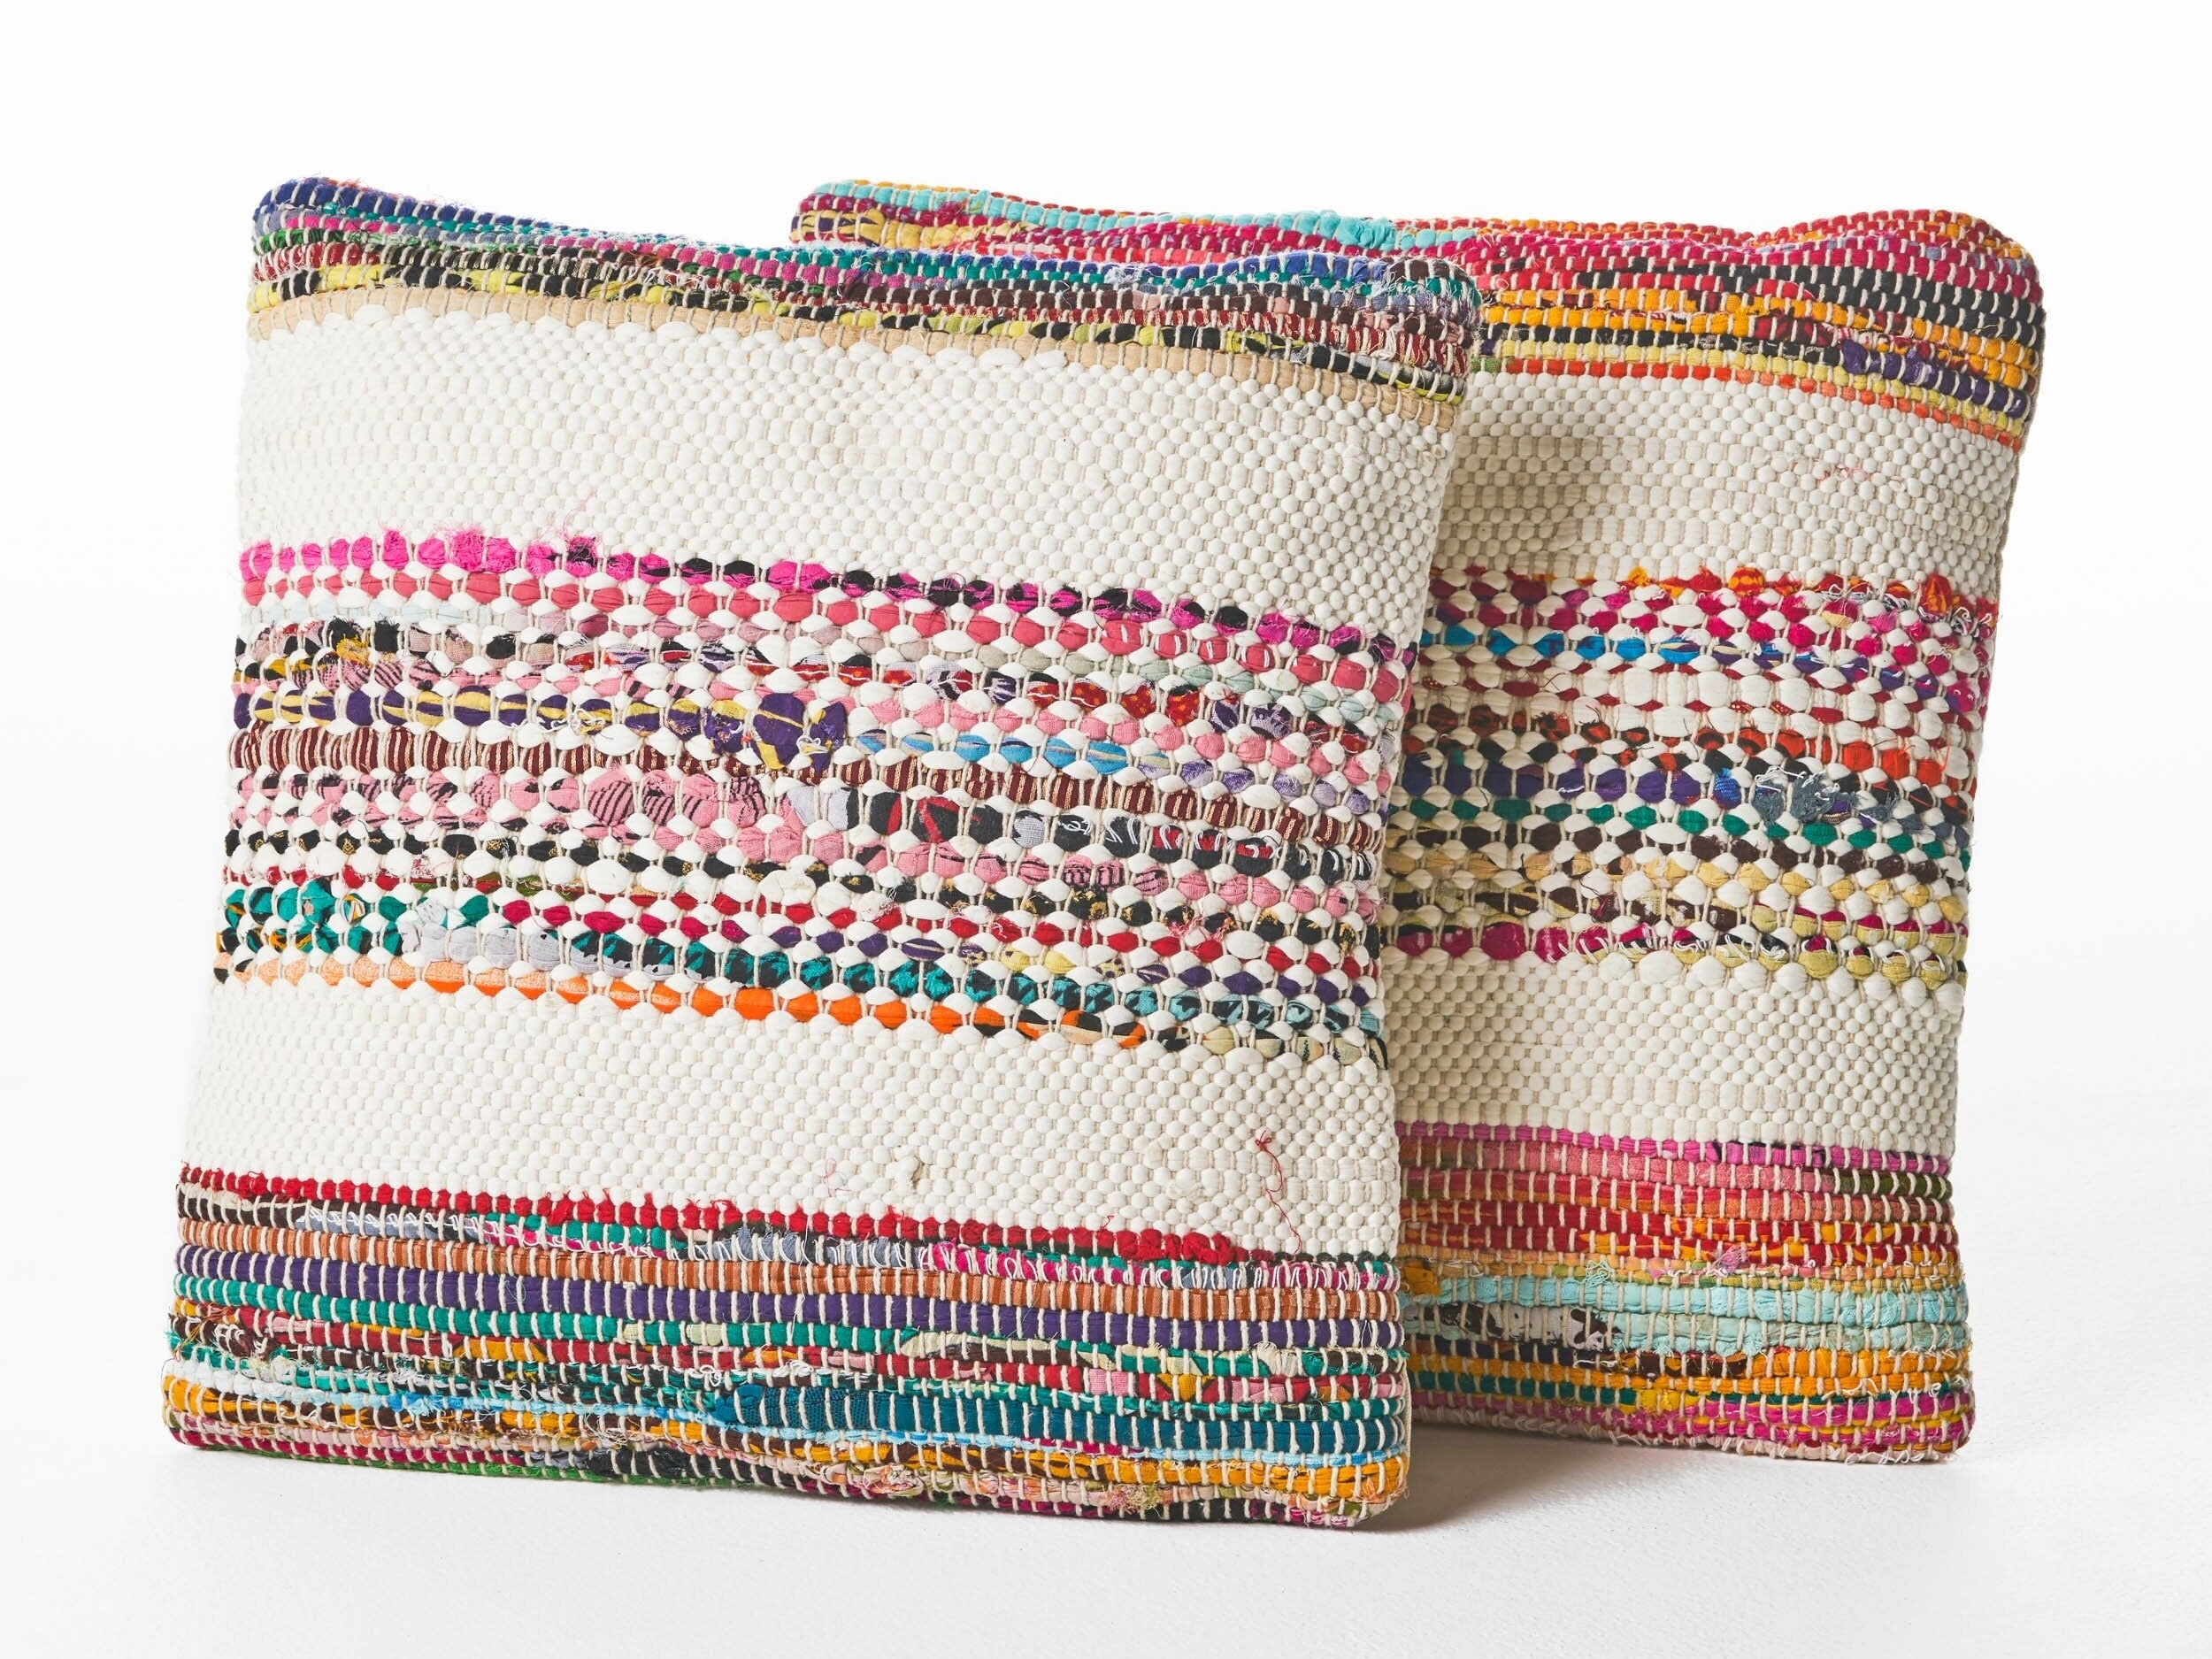 cream, pink, orange and turquoise pillows